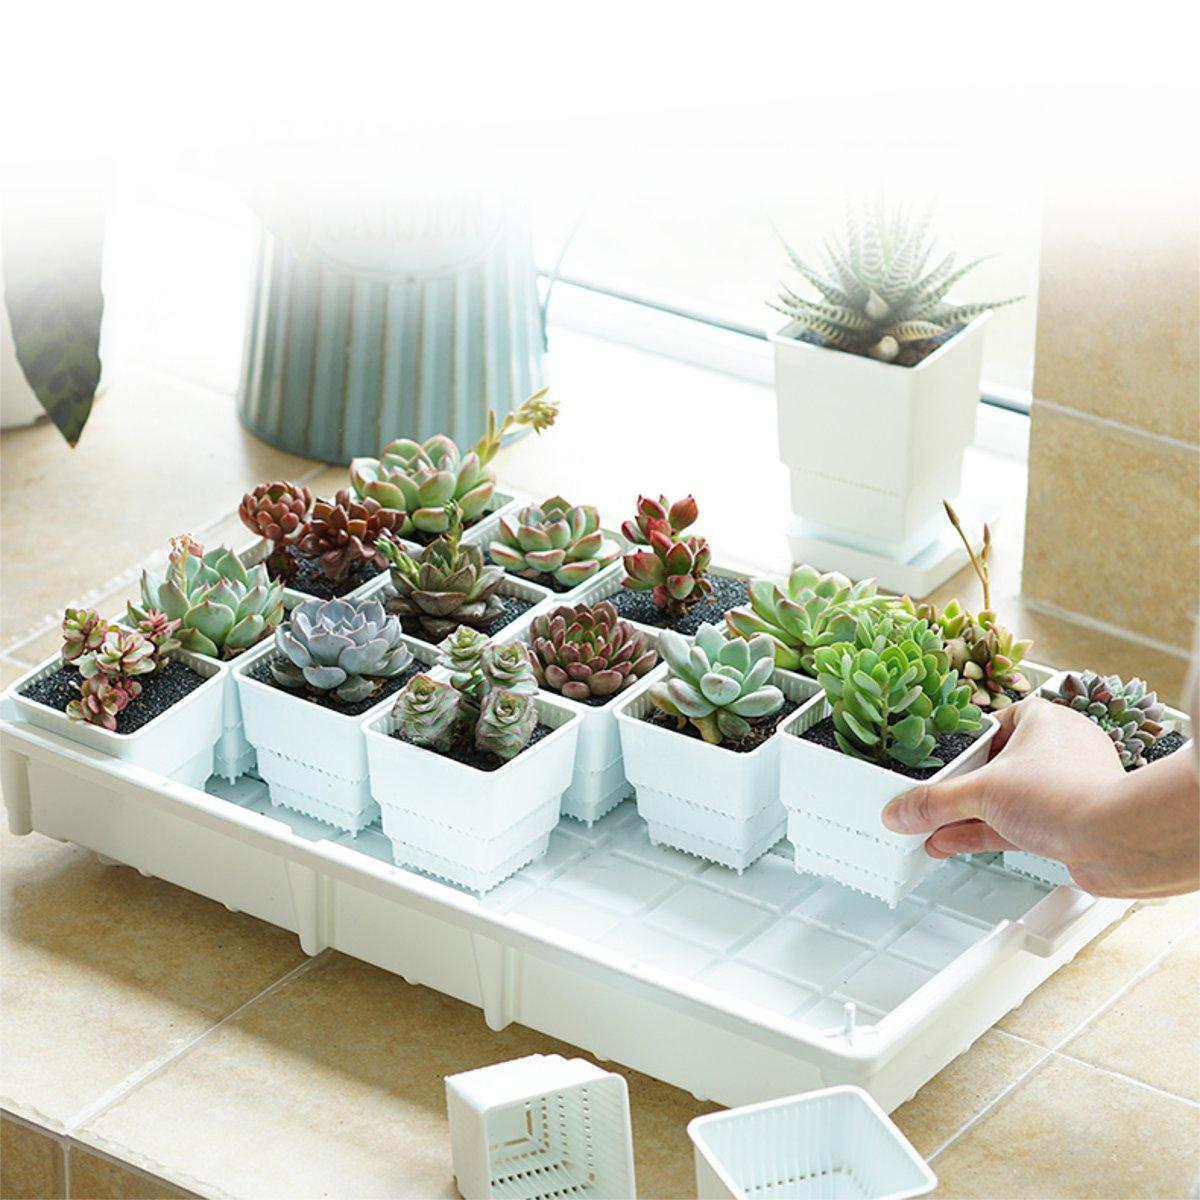 PP Plant Tray Succulents Seedling Drain Balcony Growing Holder Nursery Garden Decorations, Banggood  - buy with discount